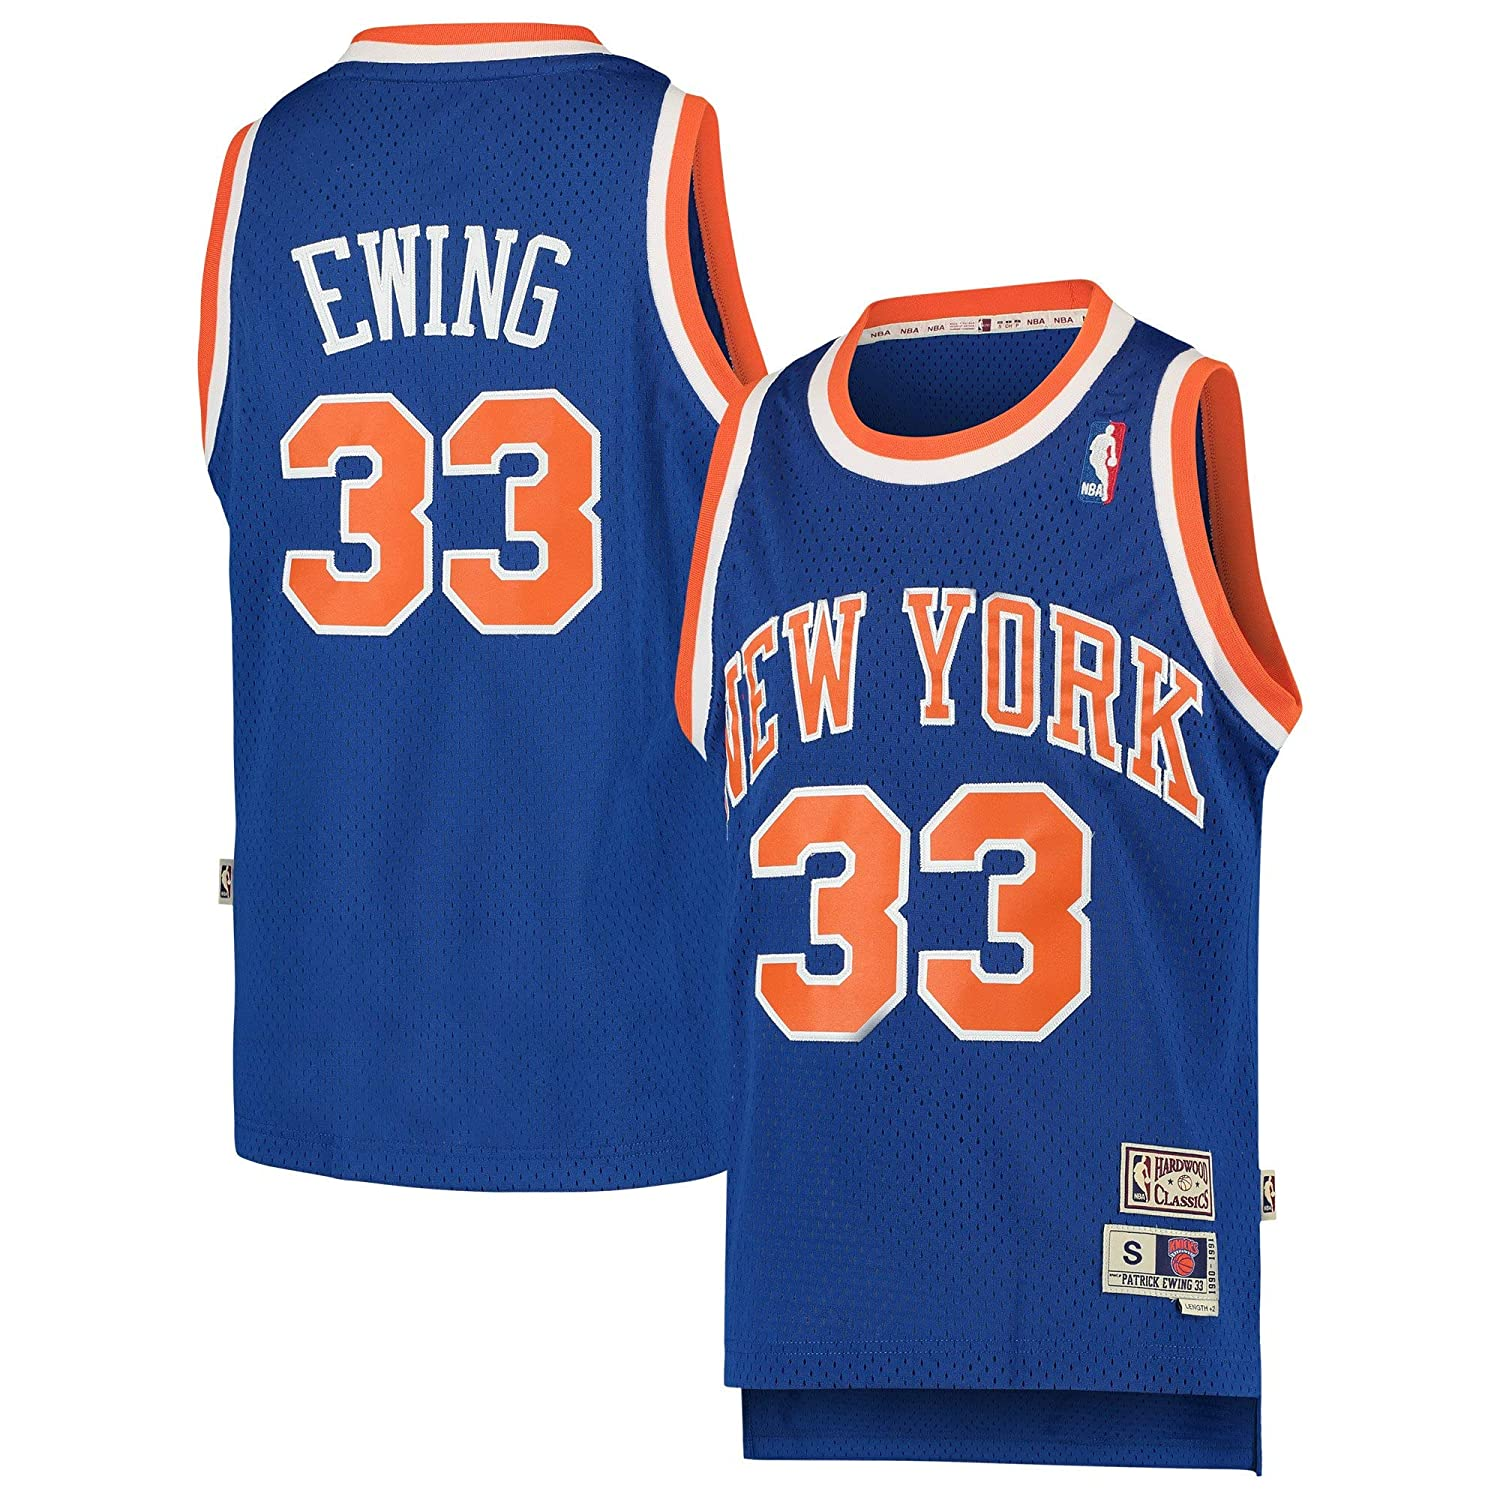 9aa68f381 Amazon.com: Patrick Ewing New York Knicks #33 Blue Youth Hardwood Classic  Swingman Jersey (Large 14/16): Clothing